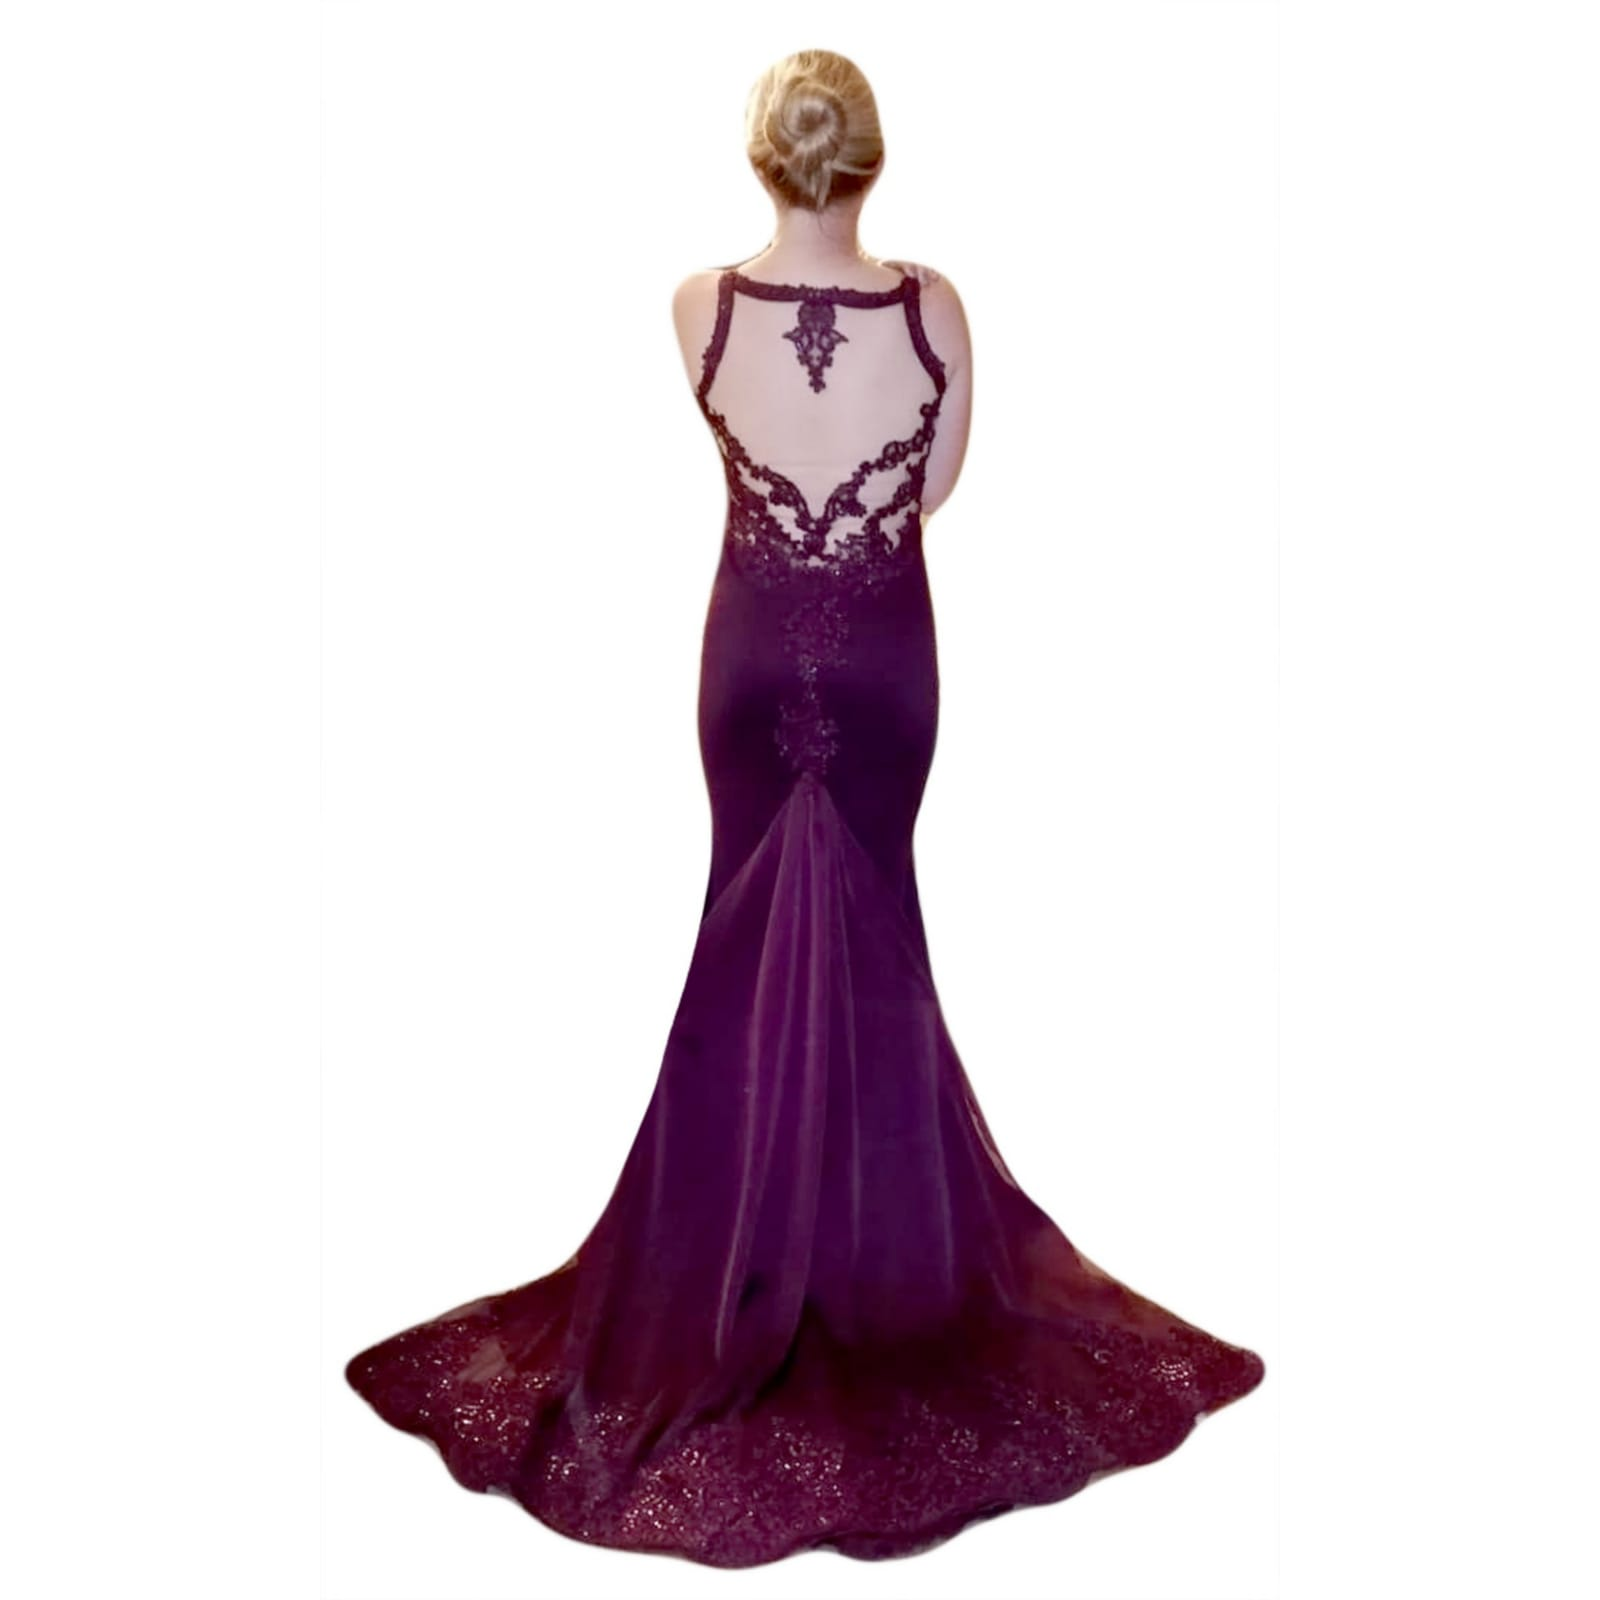 Plum soft mermaid gala dress illusion lace bodice 8 plum soft mermaid gala dress illusion lace bodice, open back detailed with lace. With a chiffon train with lace border.